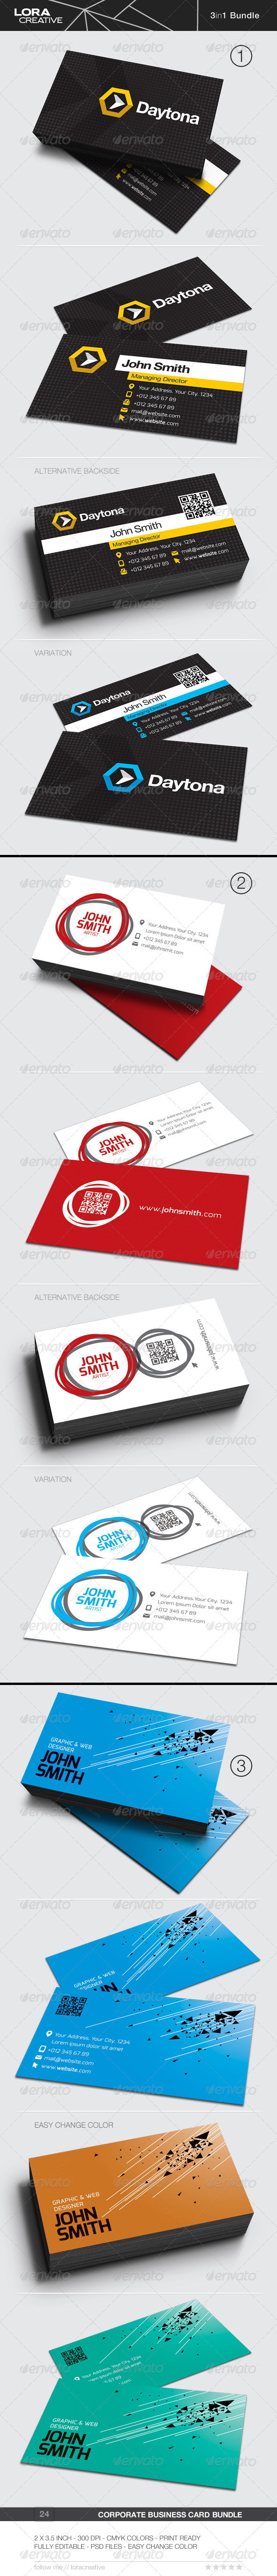 3 in 1 Business Card Bundle - 24 - Business Cards Print Templates